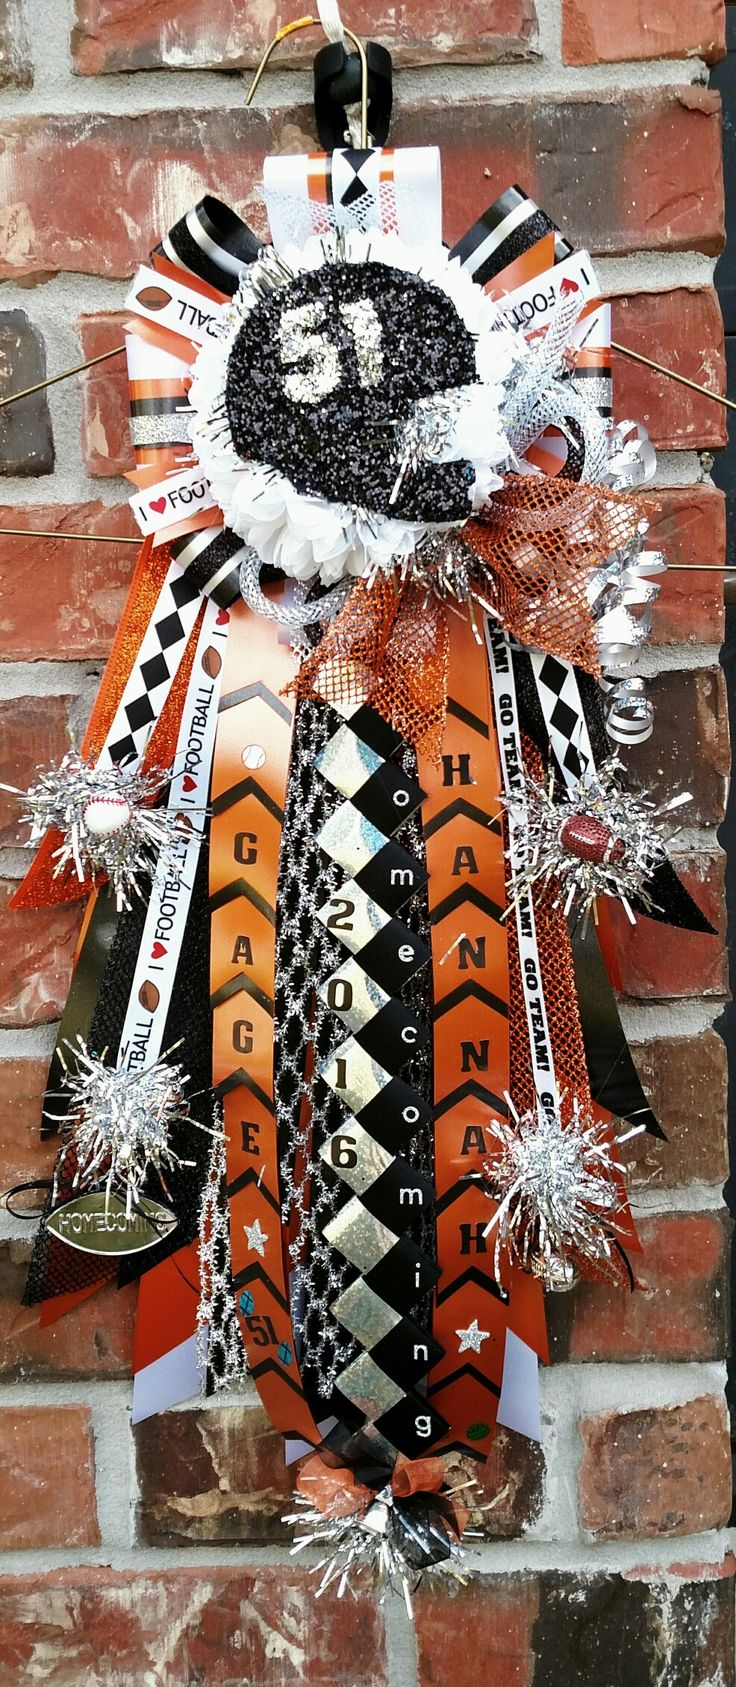 "Boys 18"" garter mum. Orange black white and silver homecoming mum. Designed by Crafty bug"